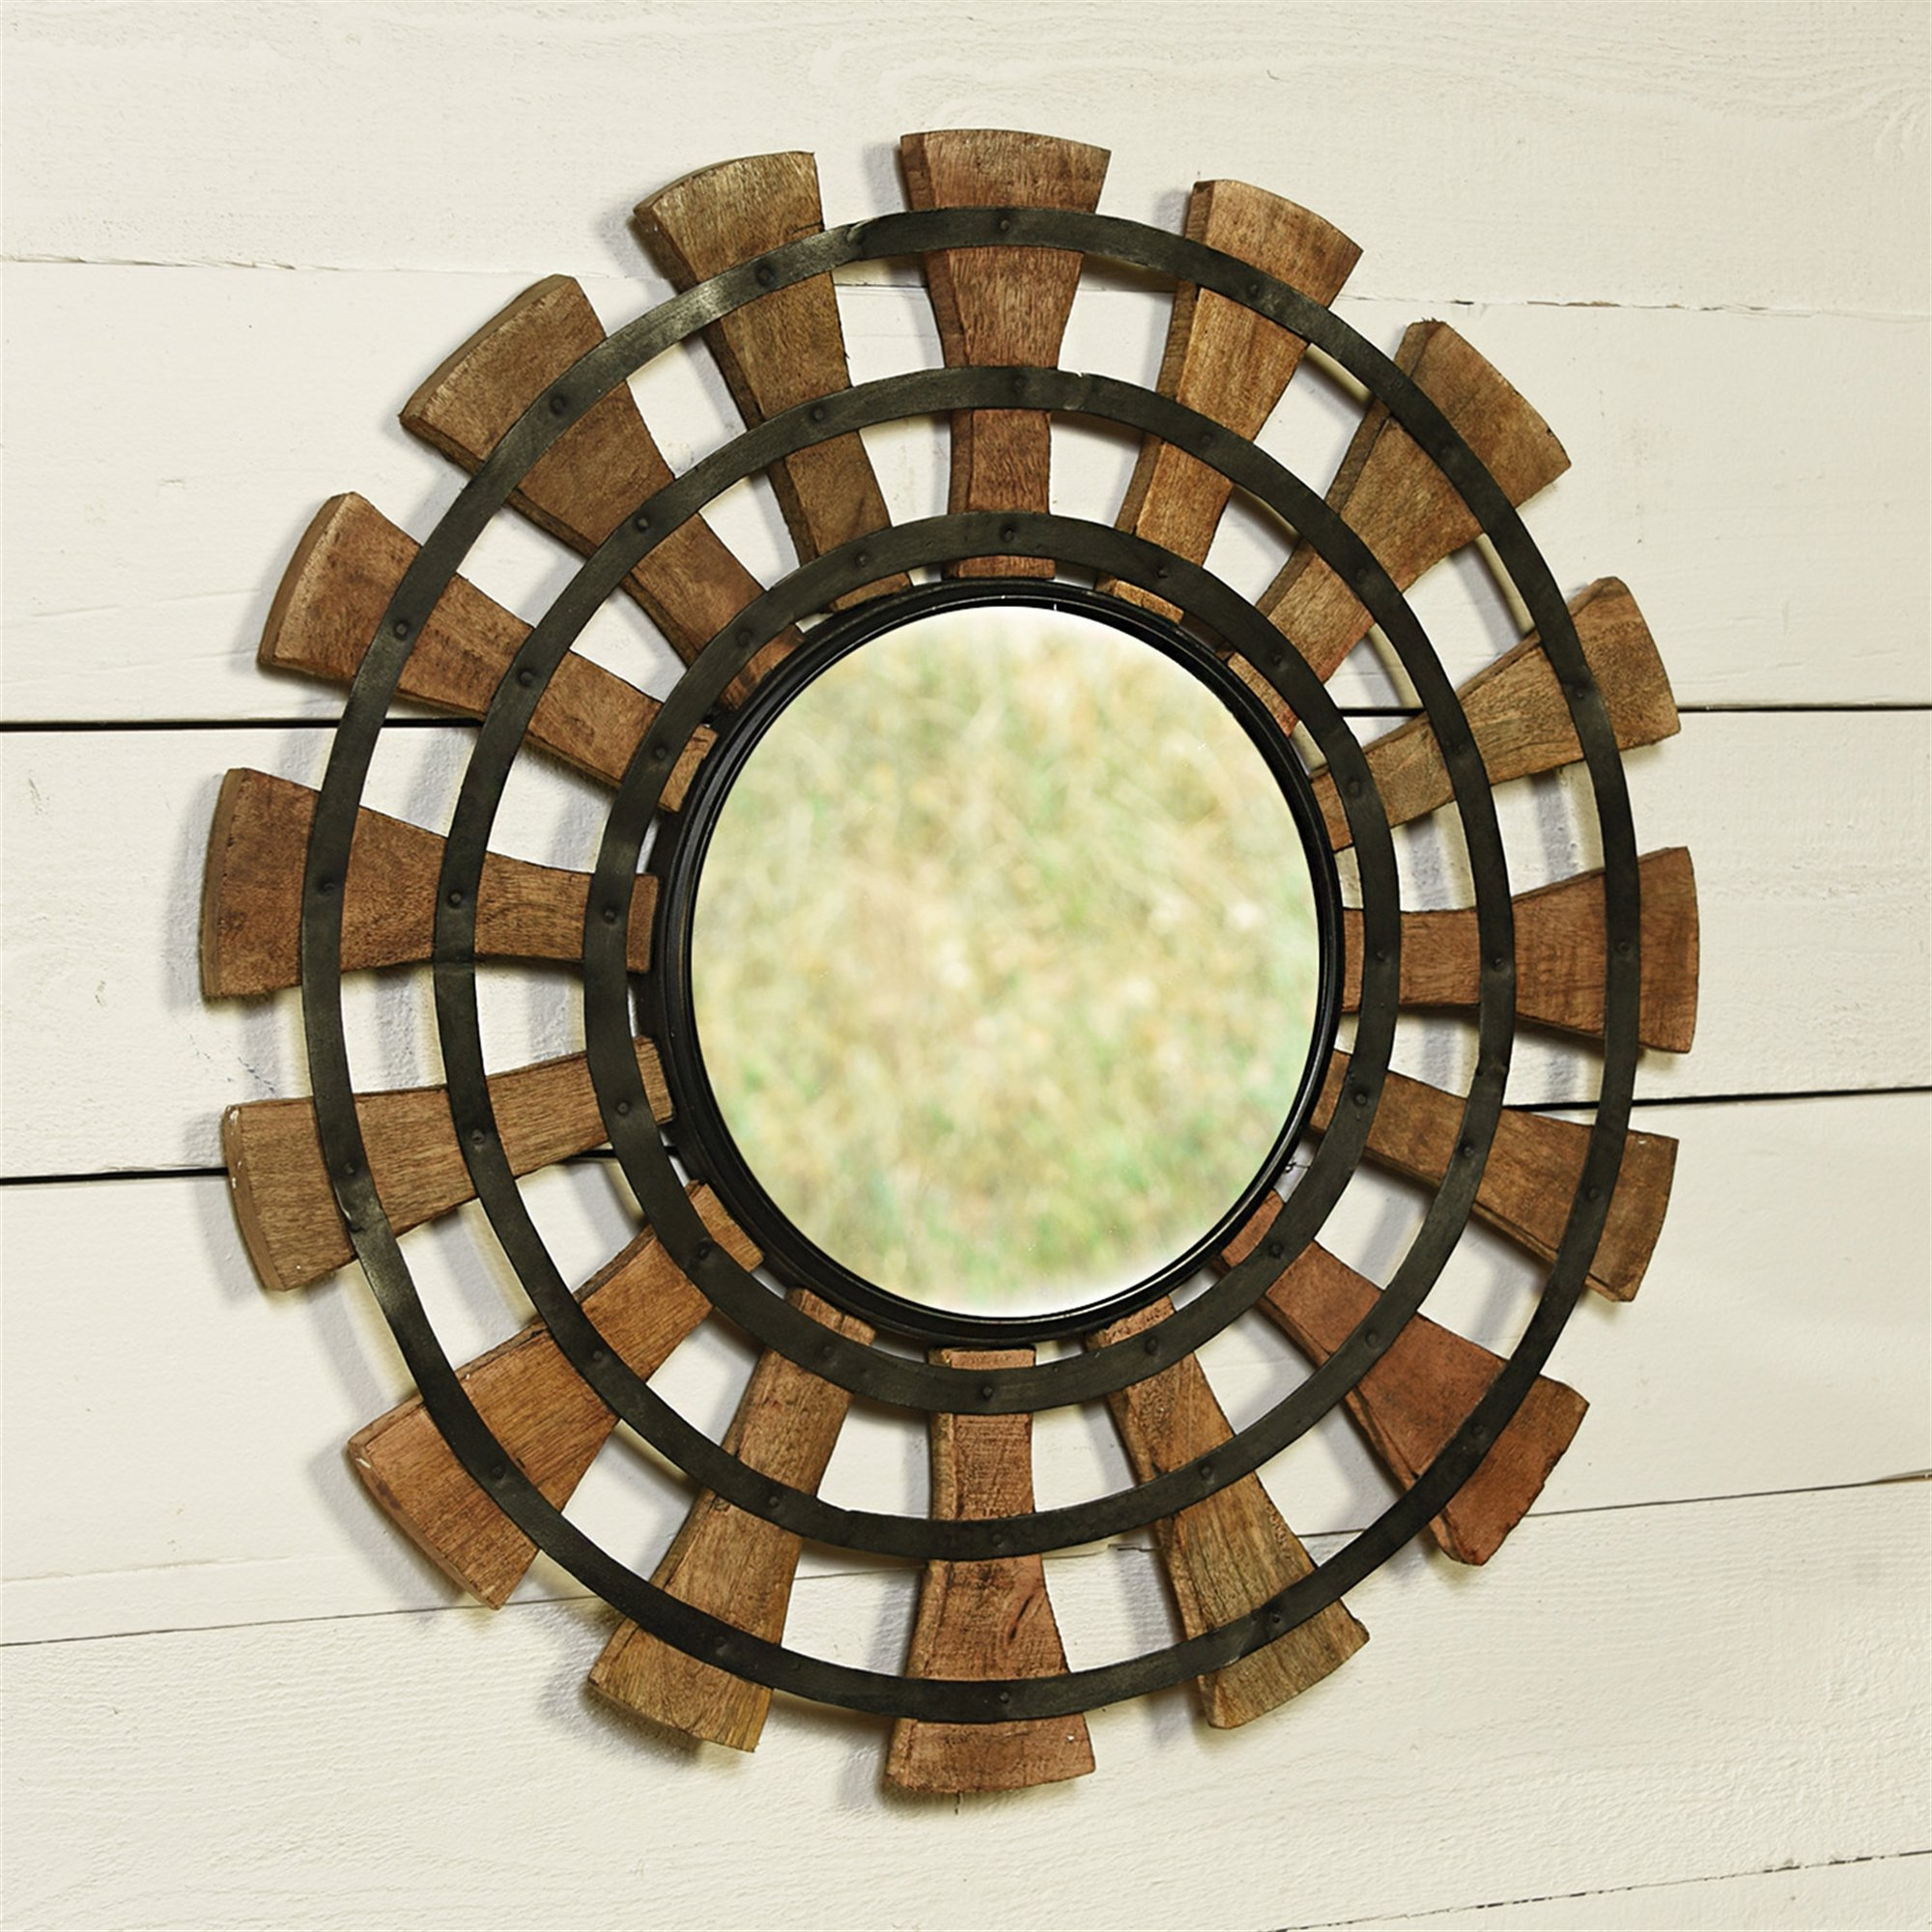 Widely Used Gurney Slade Round Wood Accent Mirror Intended For Wood Accent Mirrors (Gallery 11 of 20)